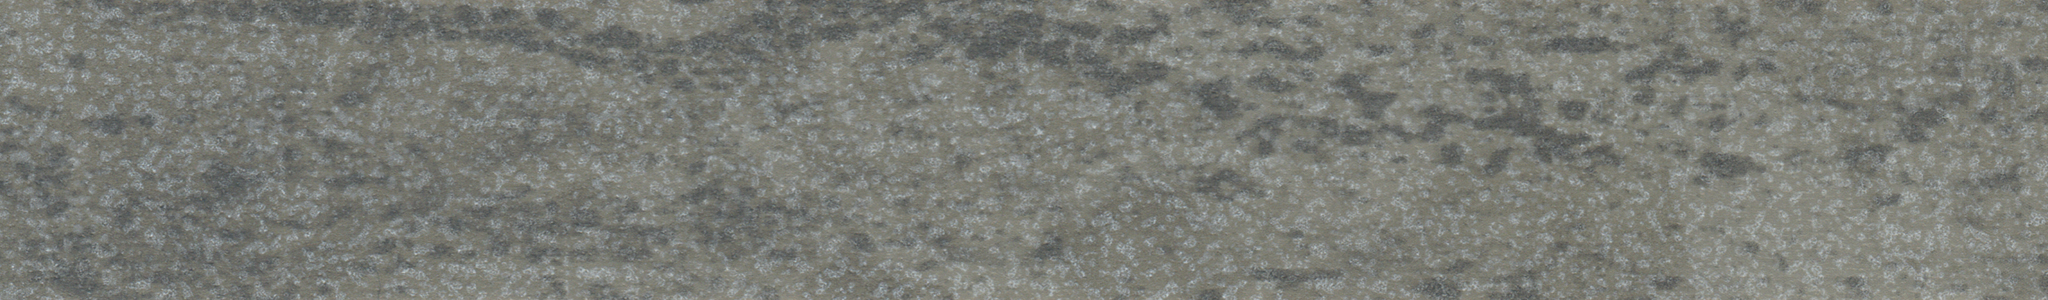 HD 29275 ABS Edge Dark Concrete Pearl